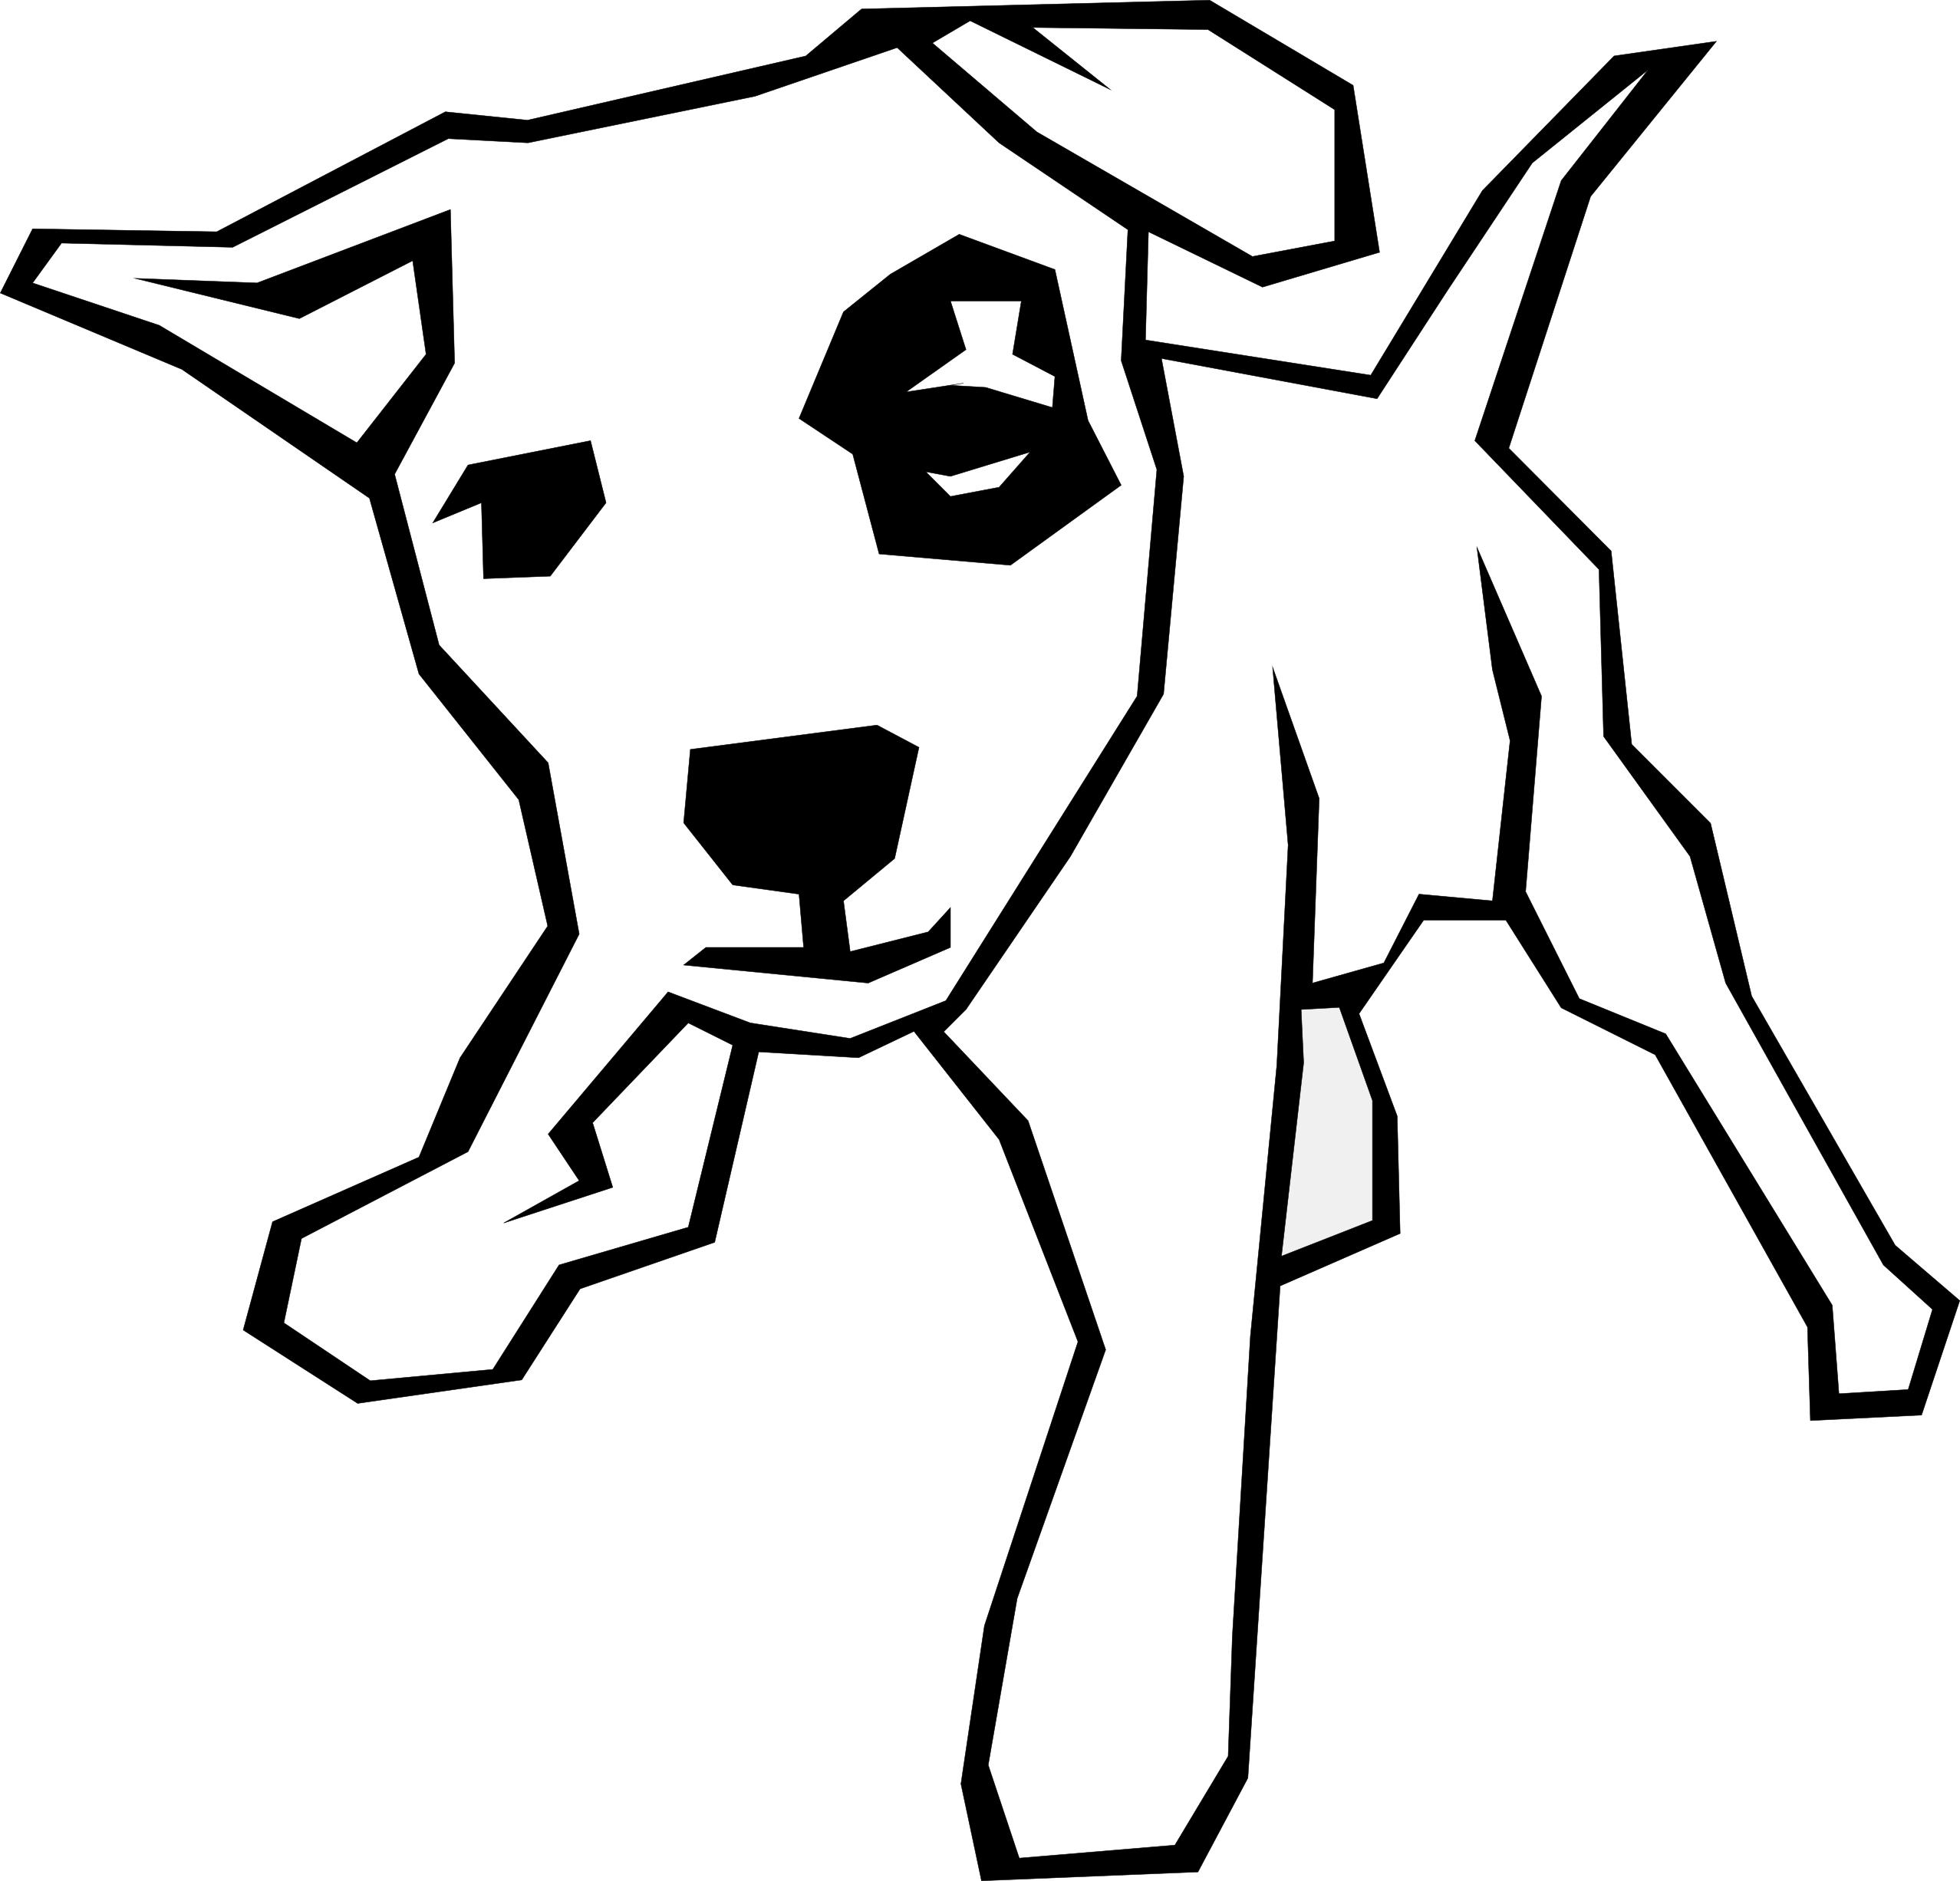 Pet clipart hug dog. Black and white drawing